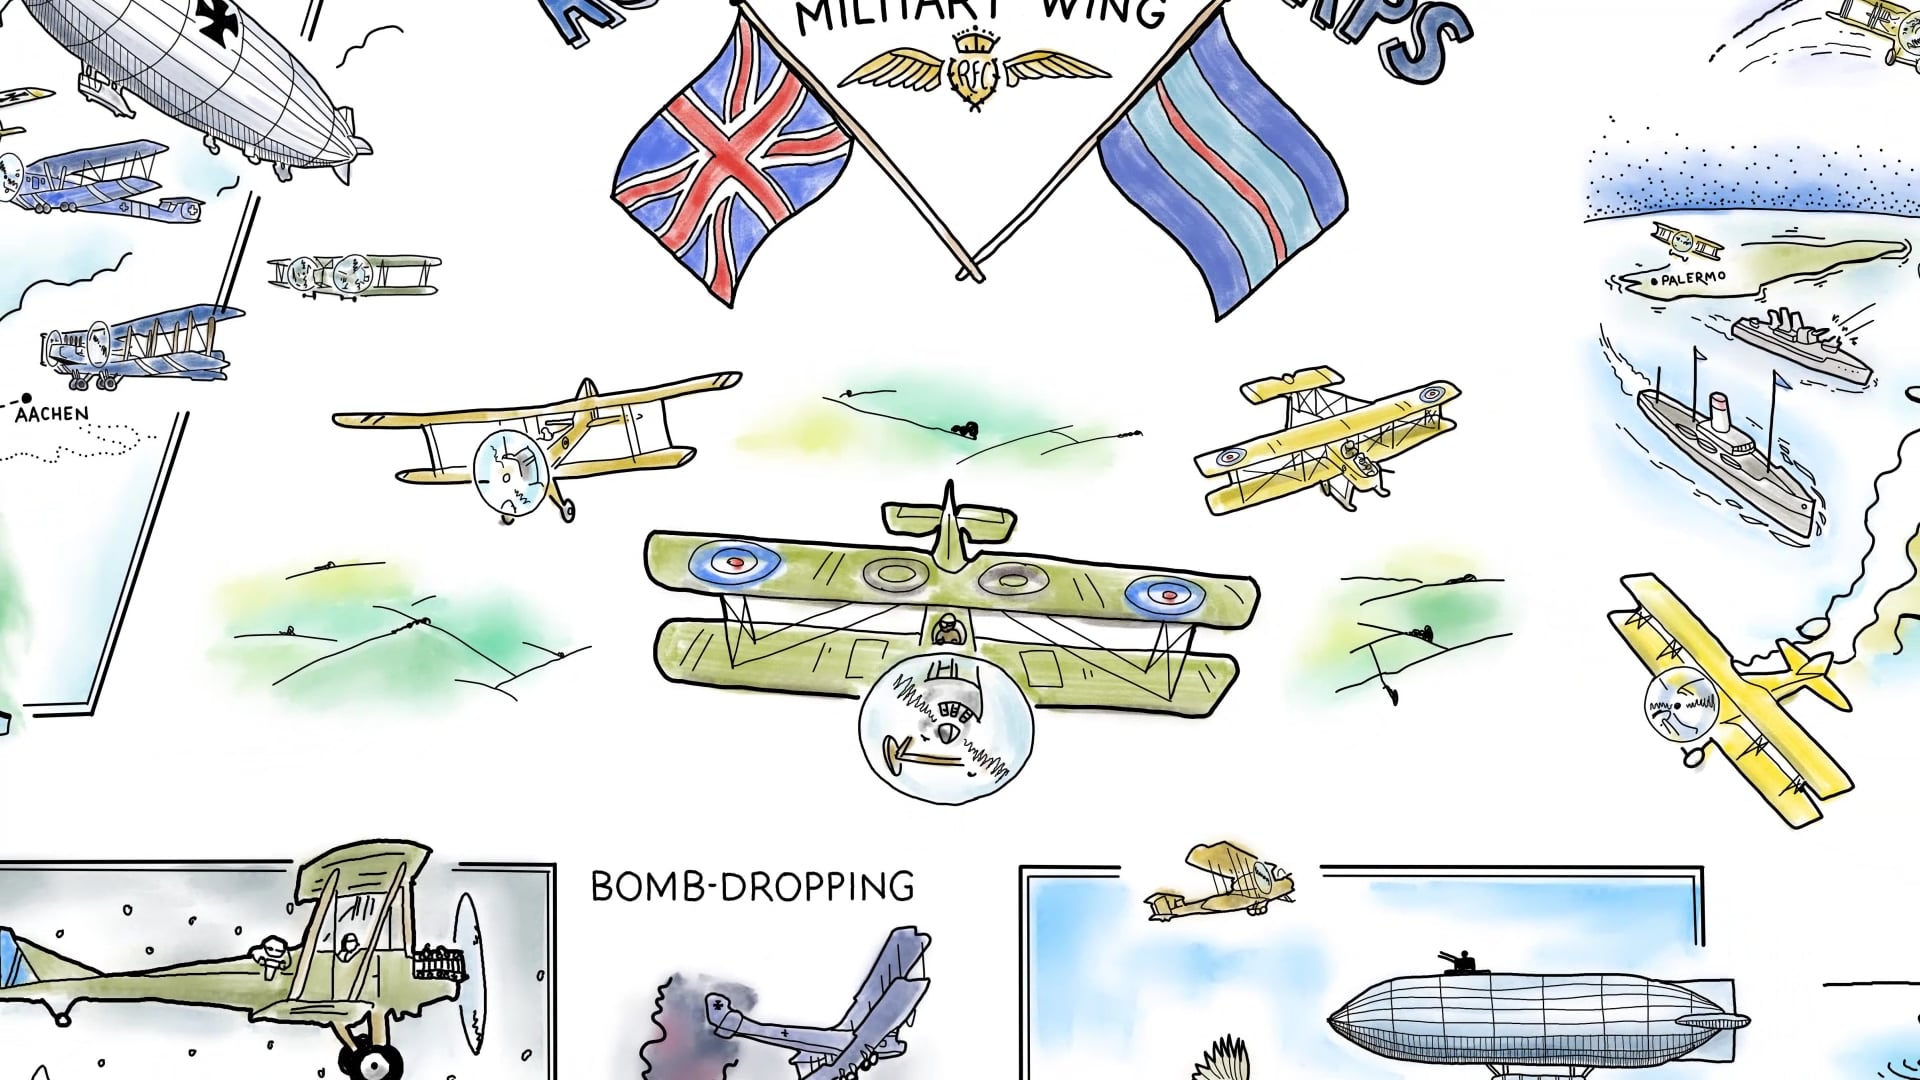 Experiments in Military Flying (colour version)